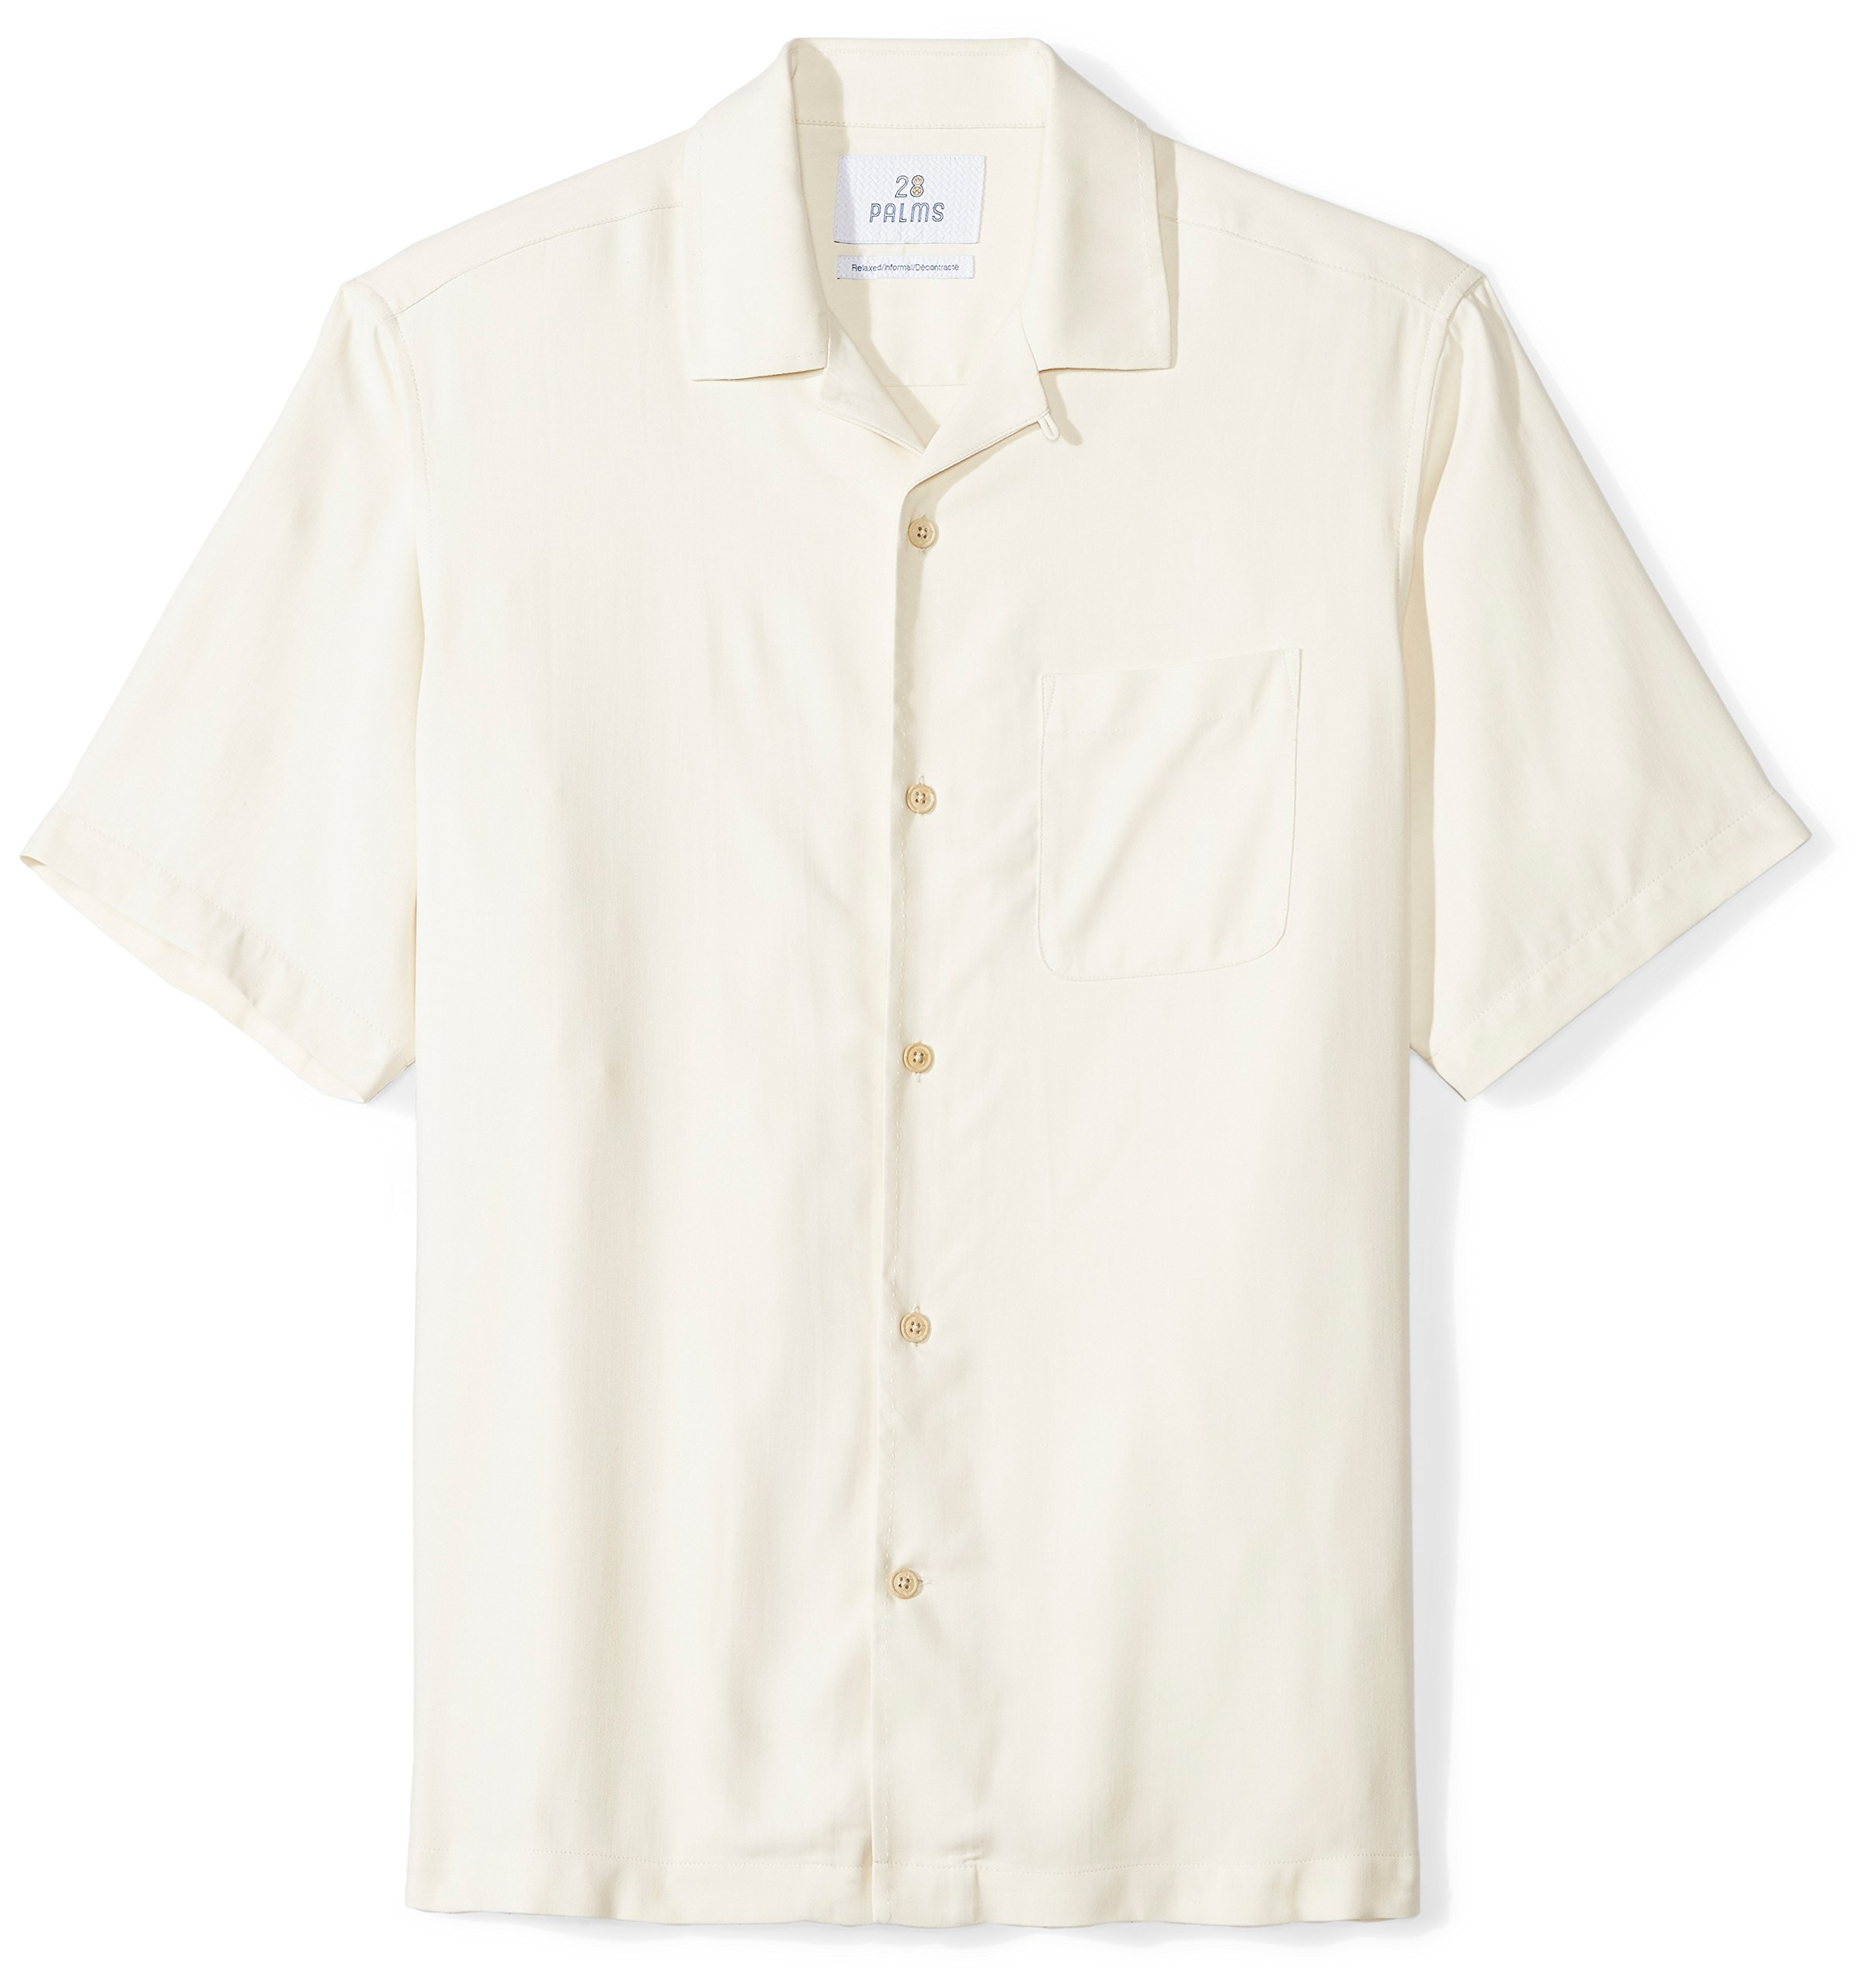 28 Palms Men's Relaxed-Fit 100% Silk Camp Shirt, Natural, Large